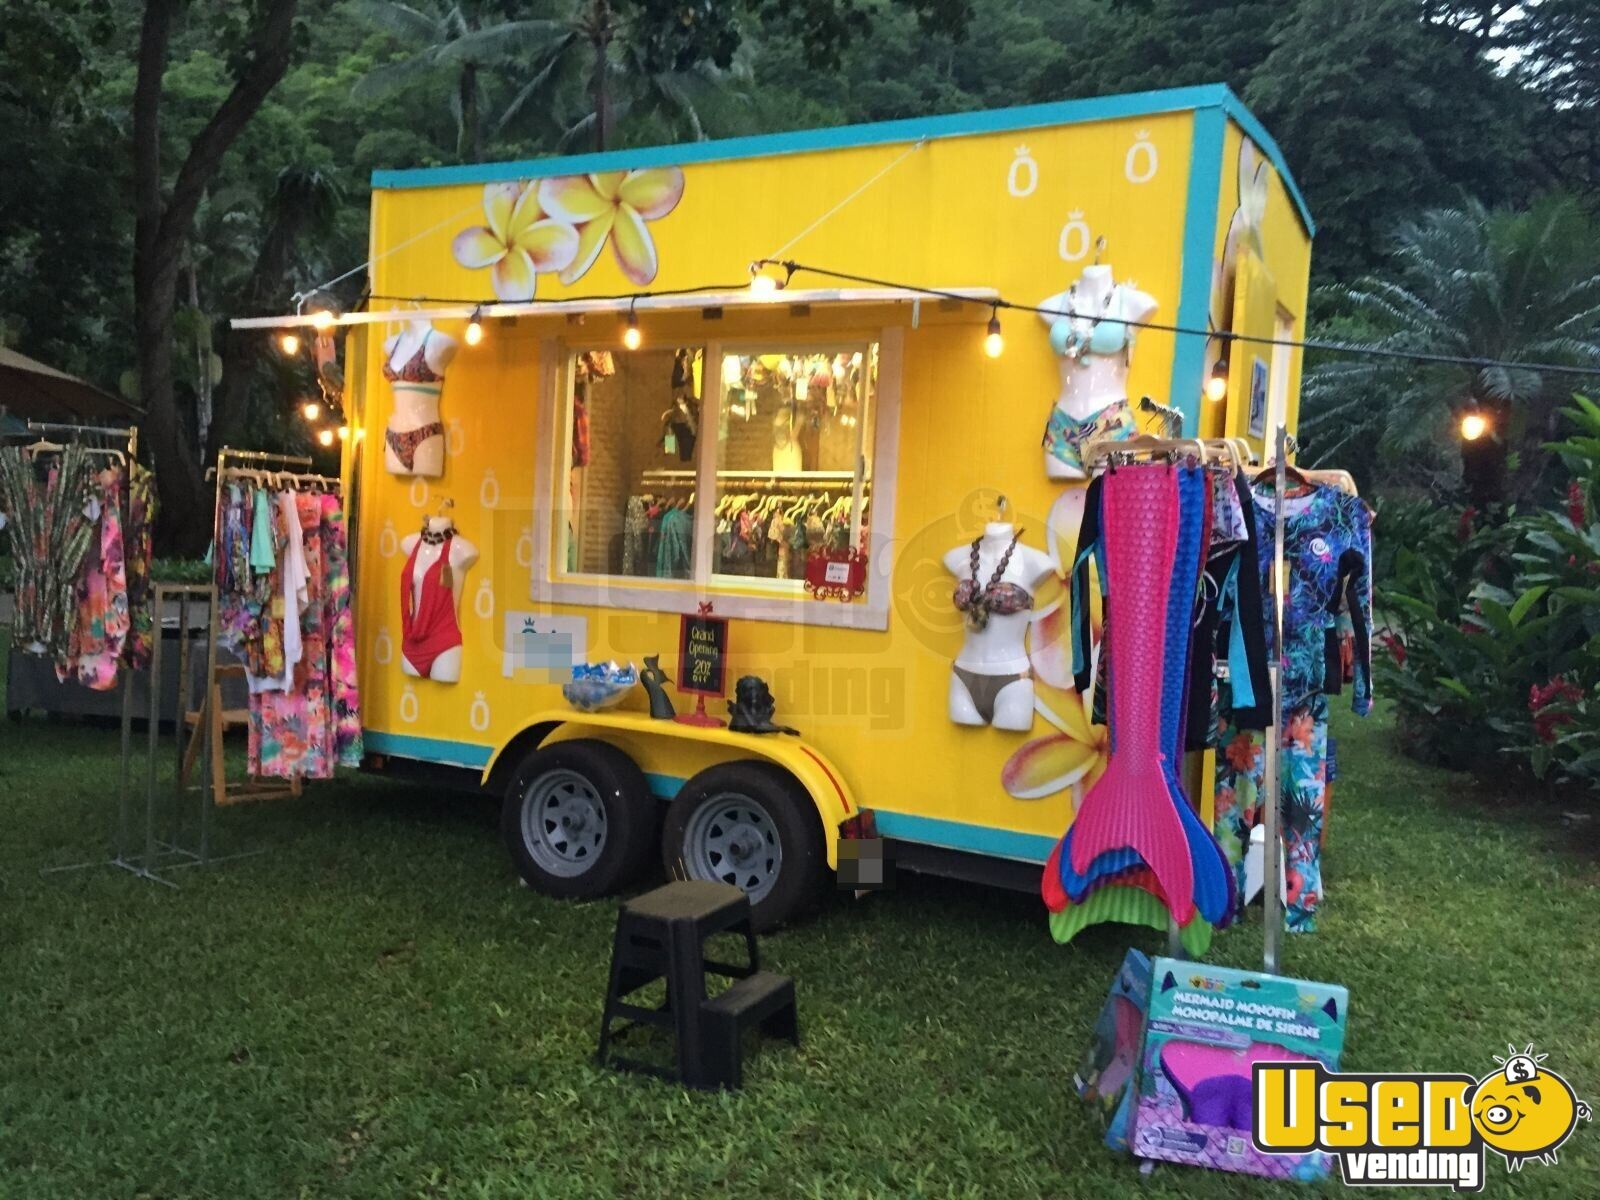 Retail Clothing Mobile Business | Fashion Concession Trailer for Sale in Hawaii